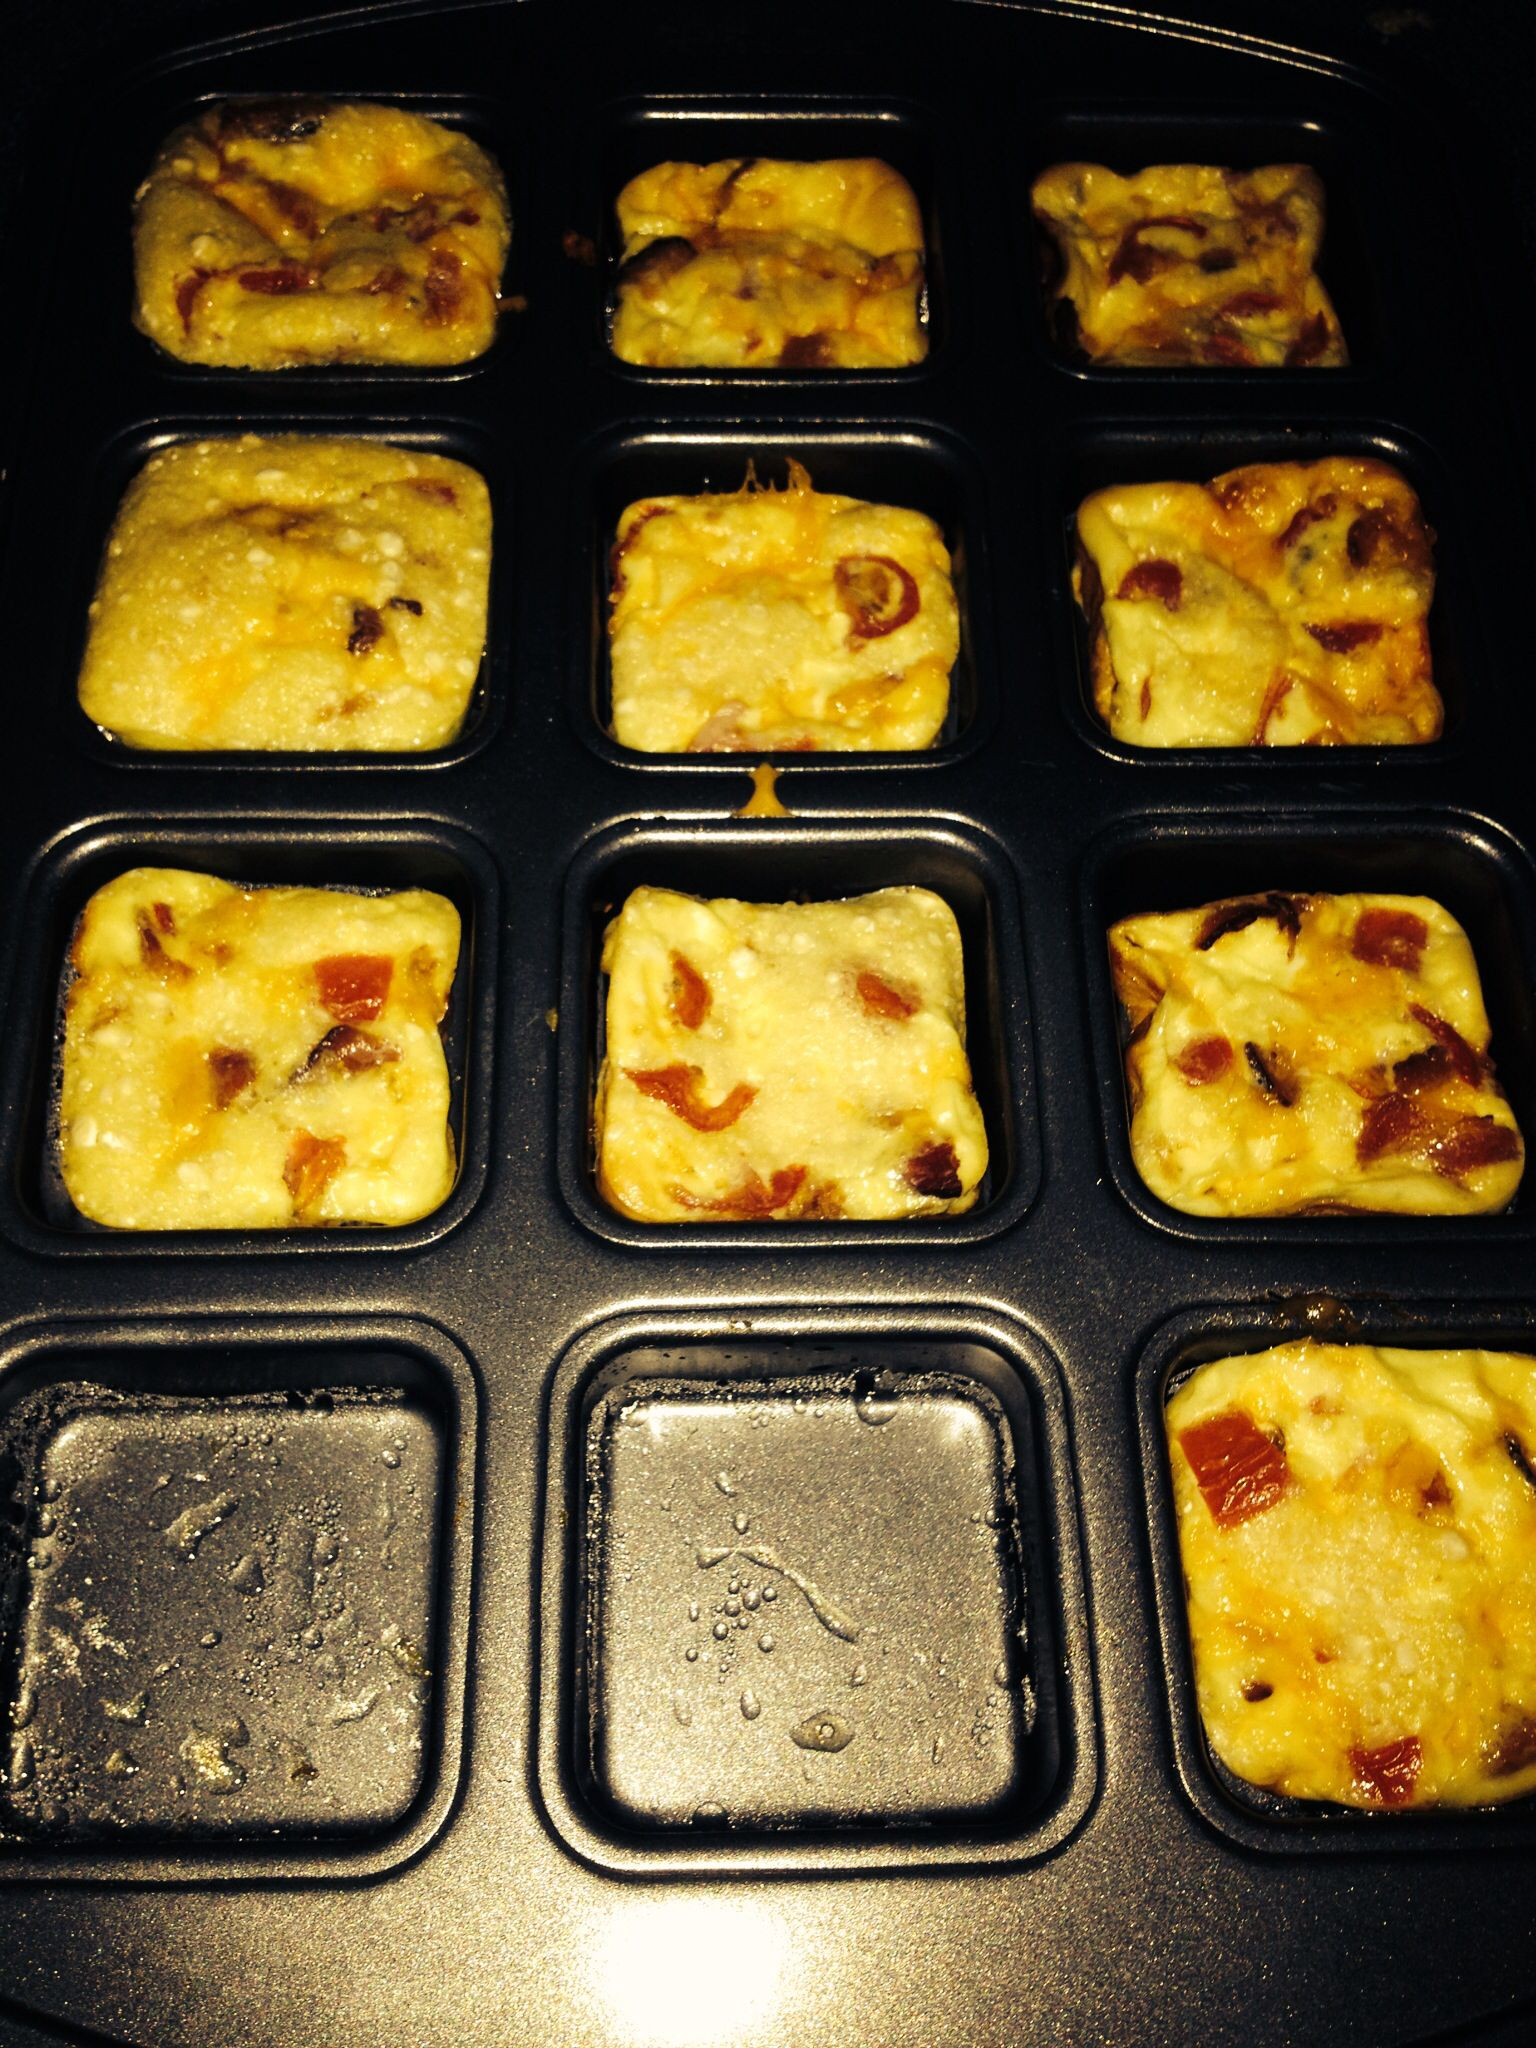 My breakfast quiches for breakfast and made them In the brownie pan! Perfect portion size!